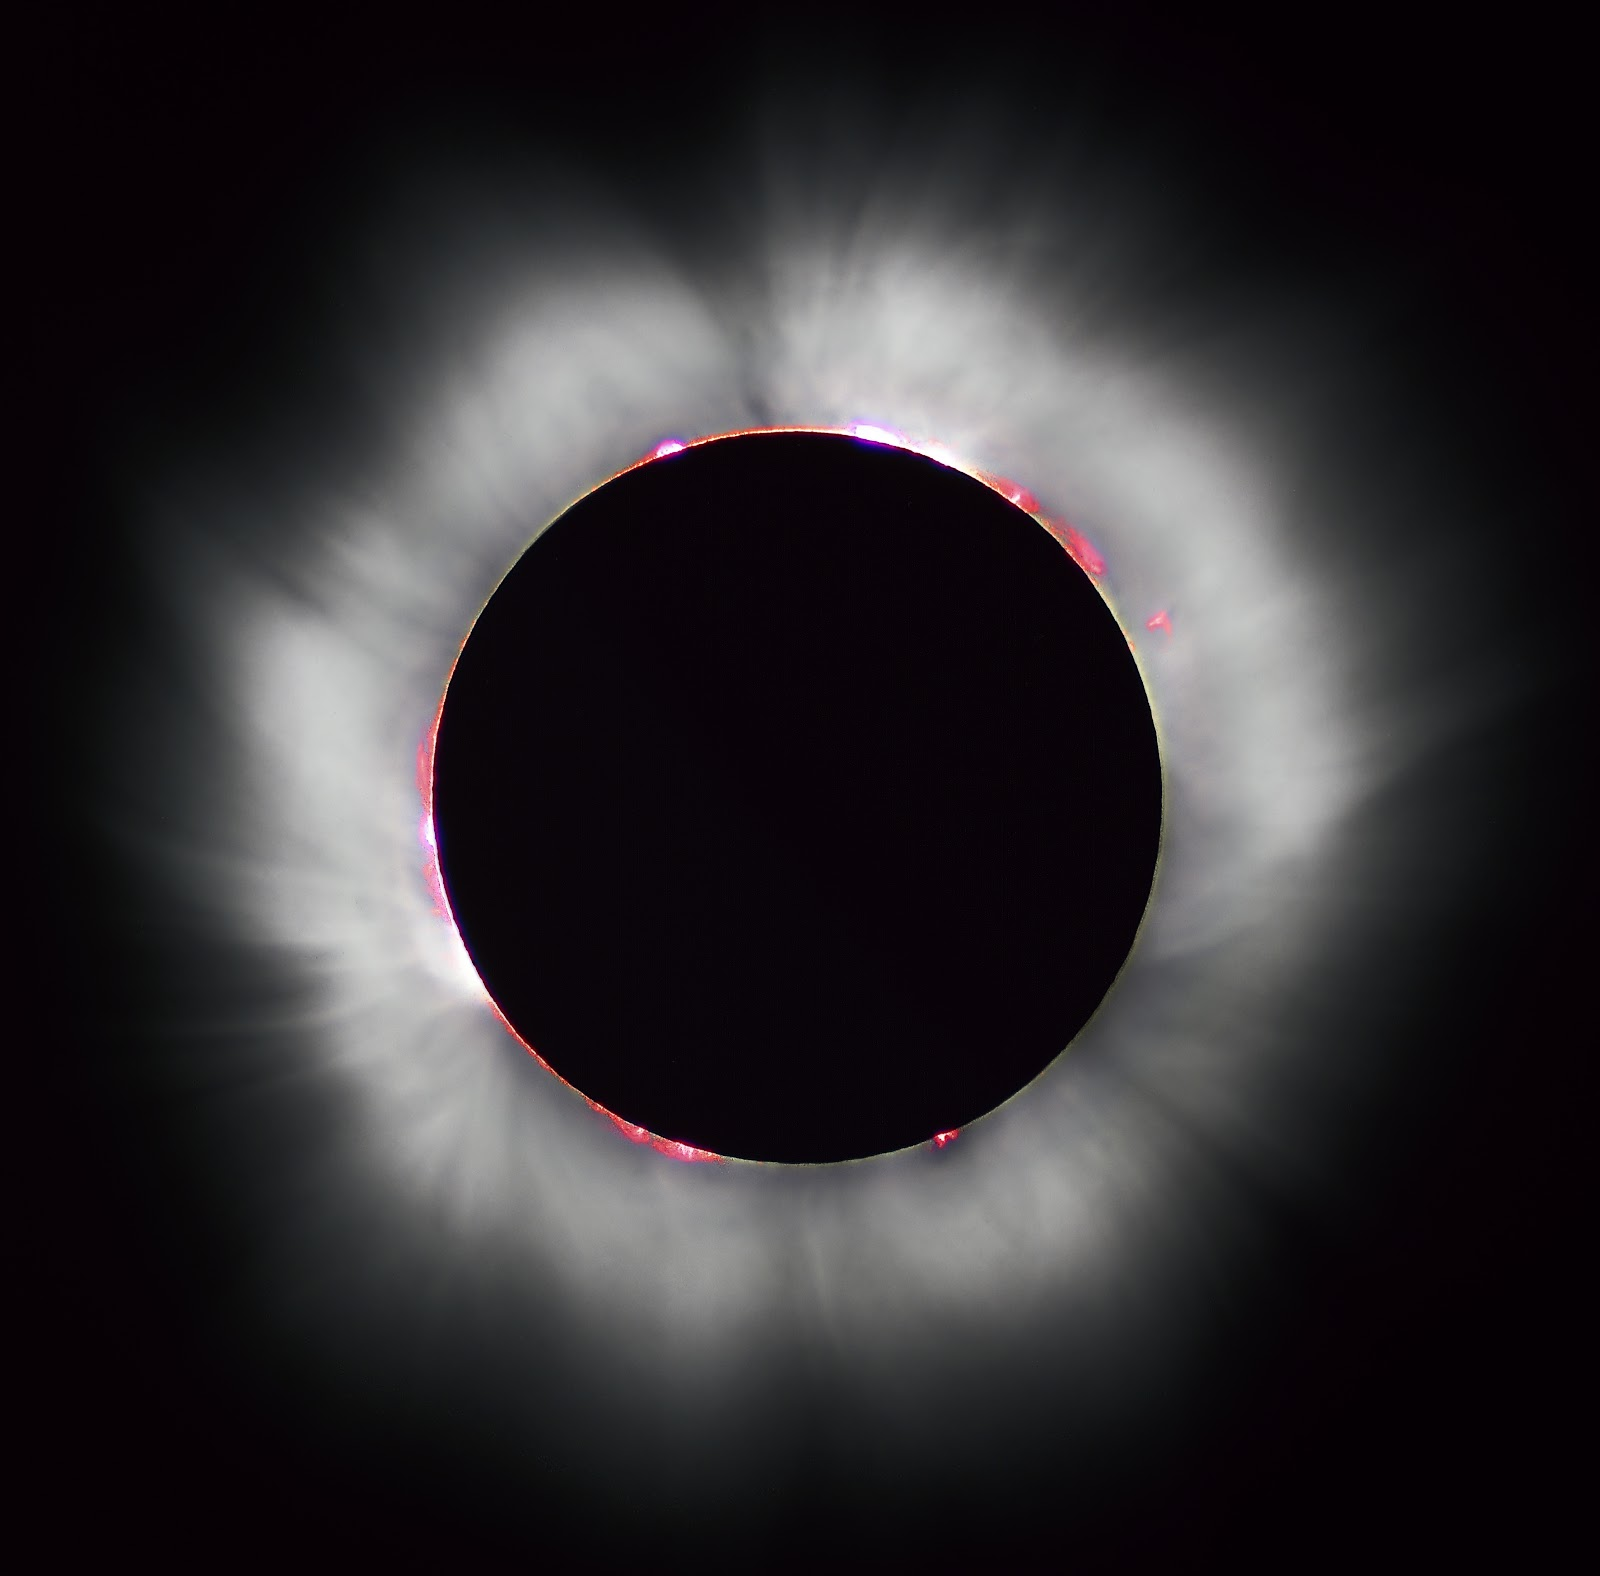 https://upload.wikimedia.org/wikipedia/commons/1/1c/Solar_eclipse_1999_4_NR.jpg